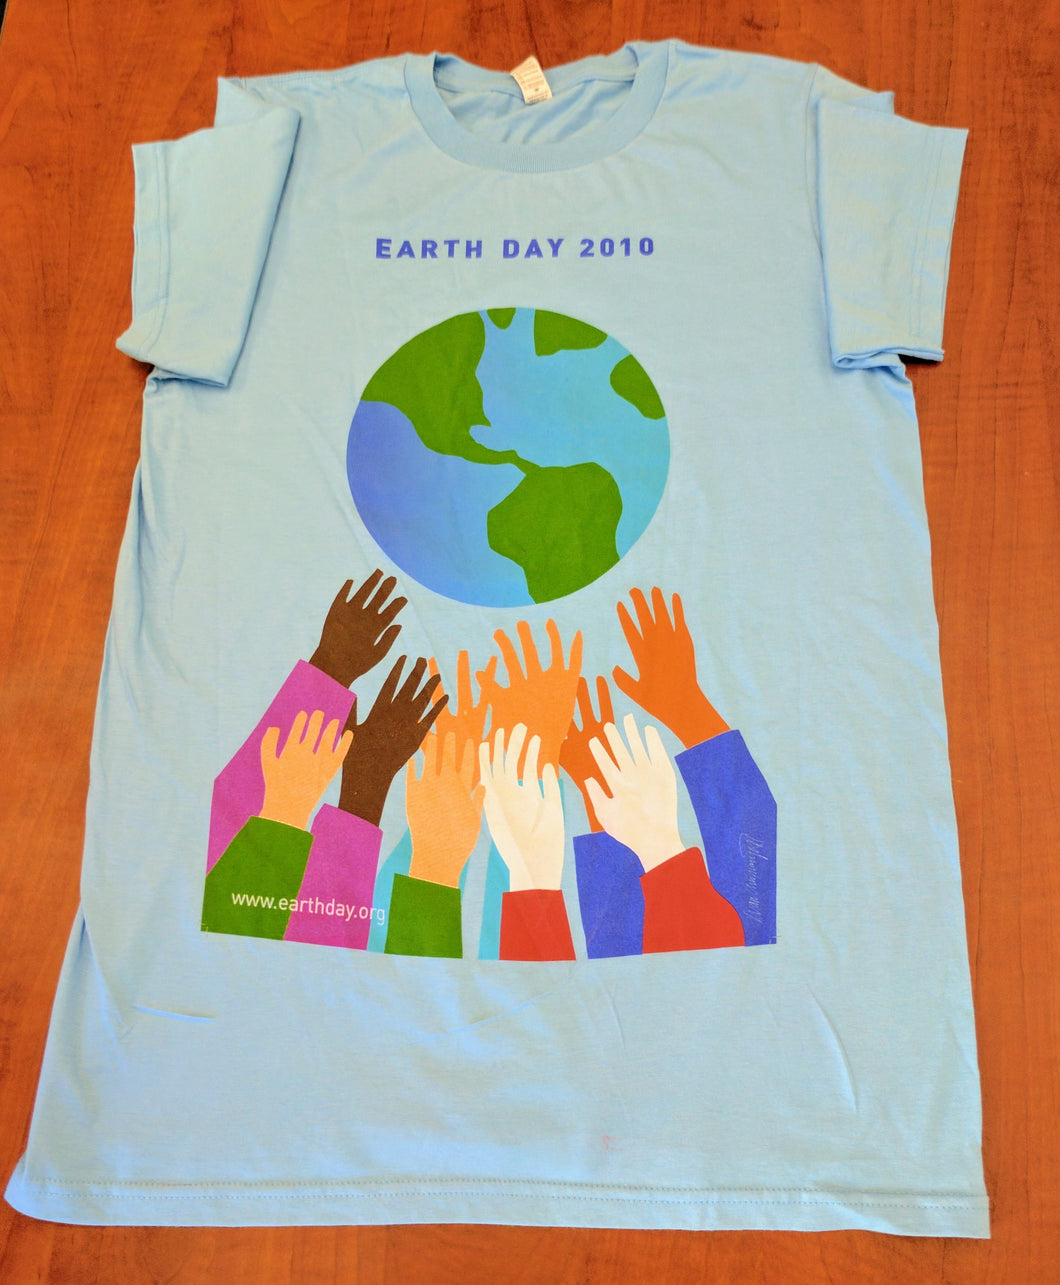 Earth Day 2010 shirt